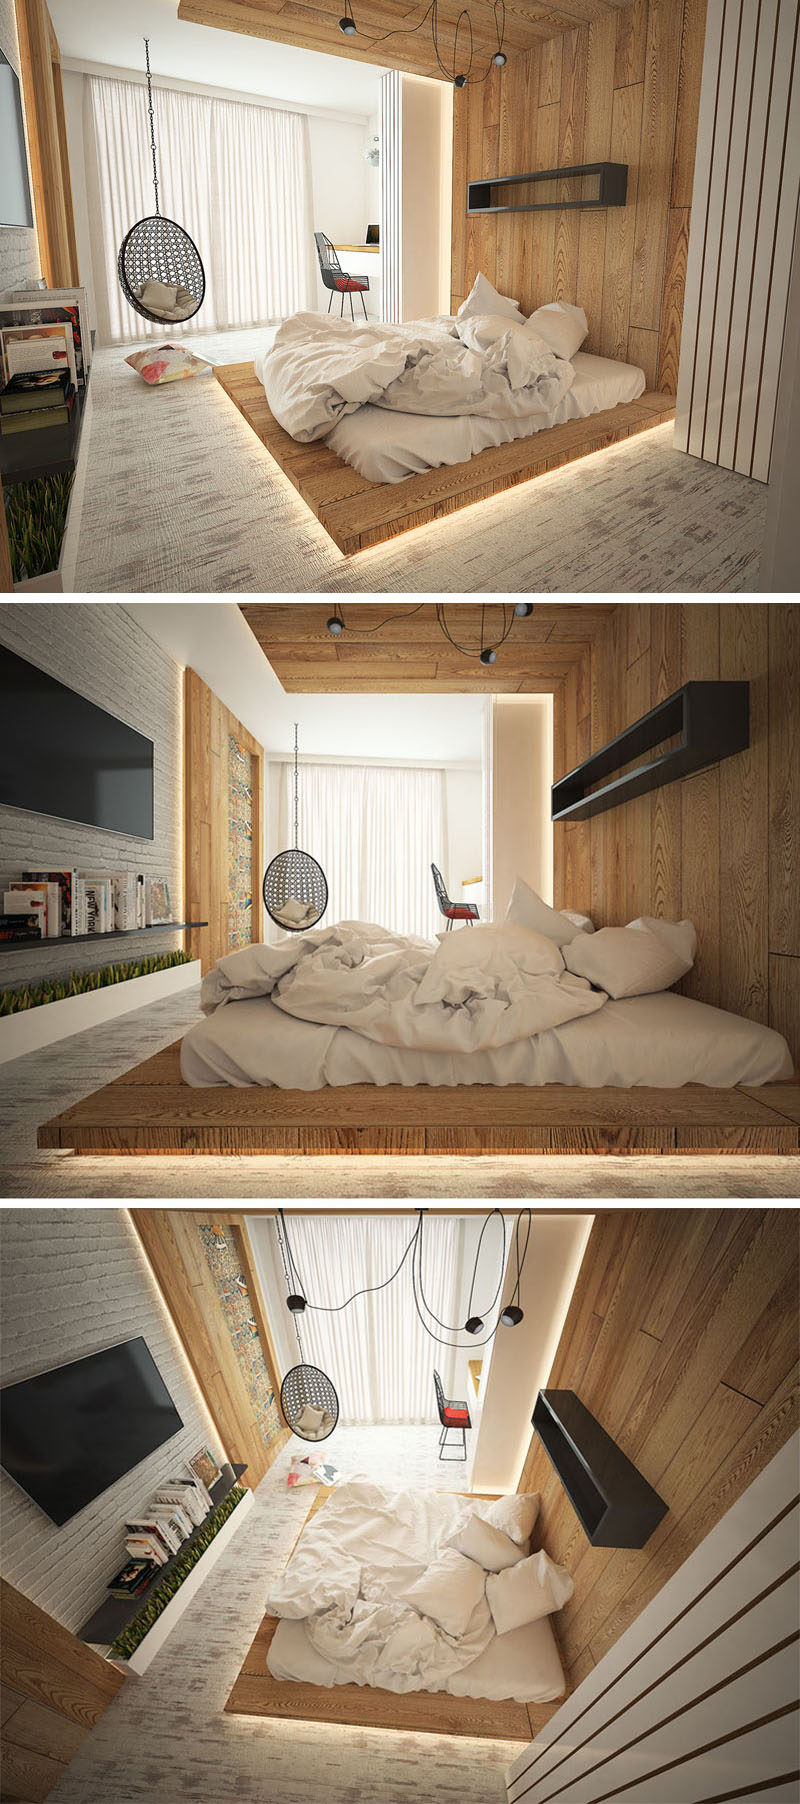 Highlight Your Bed With A FloorToCeiling Headboard And